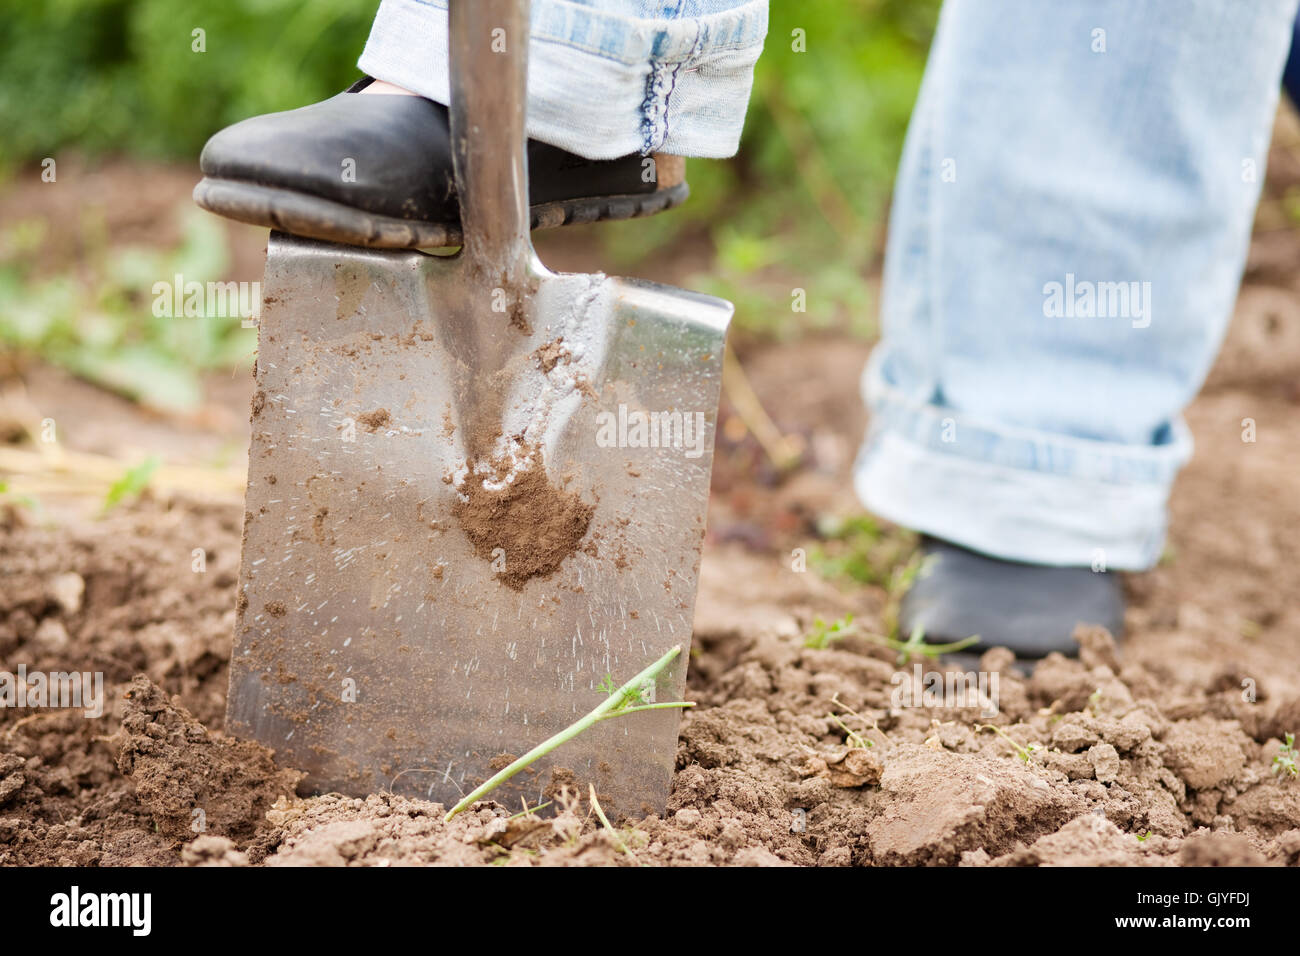 in the garden to dig the ground - Stock Image